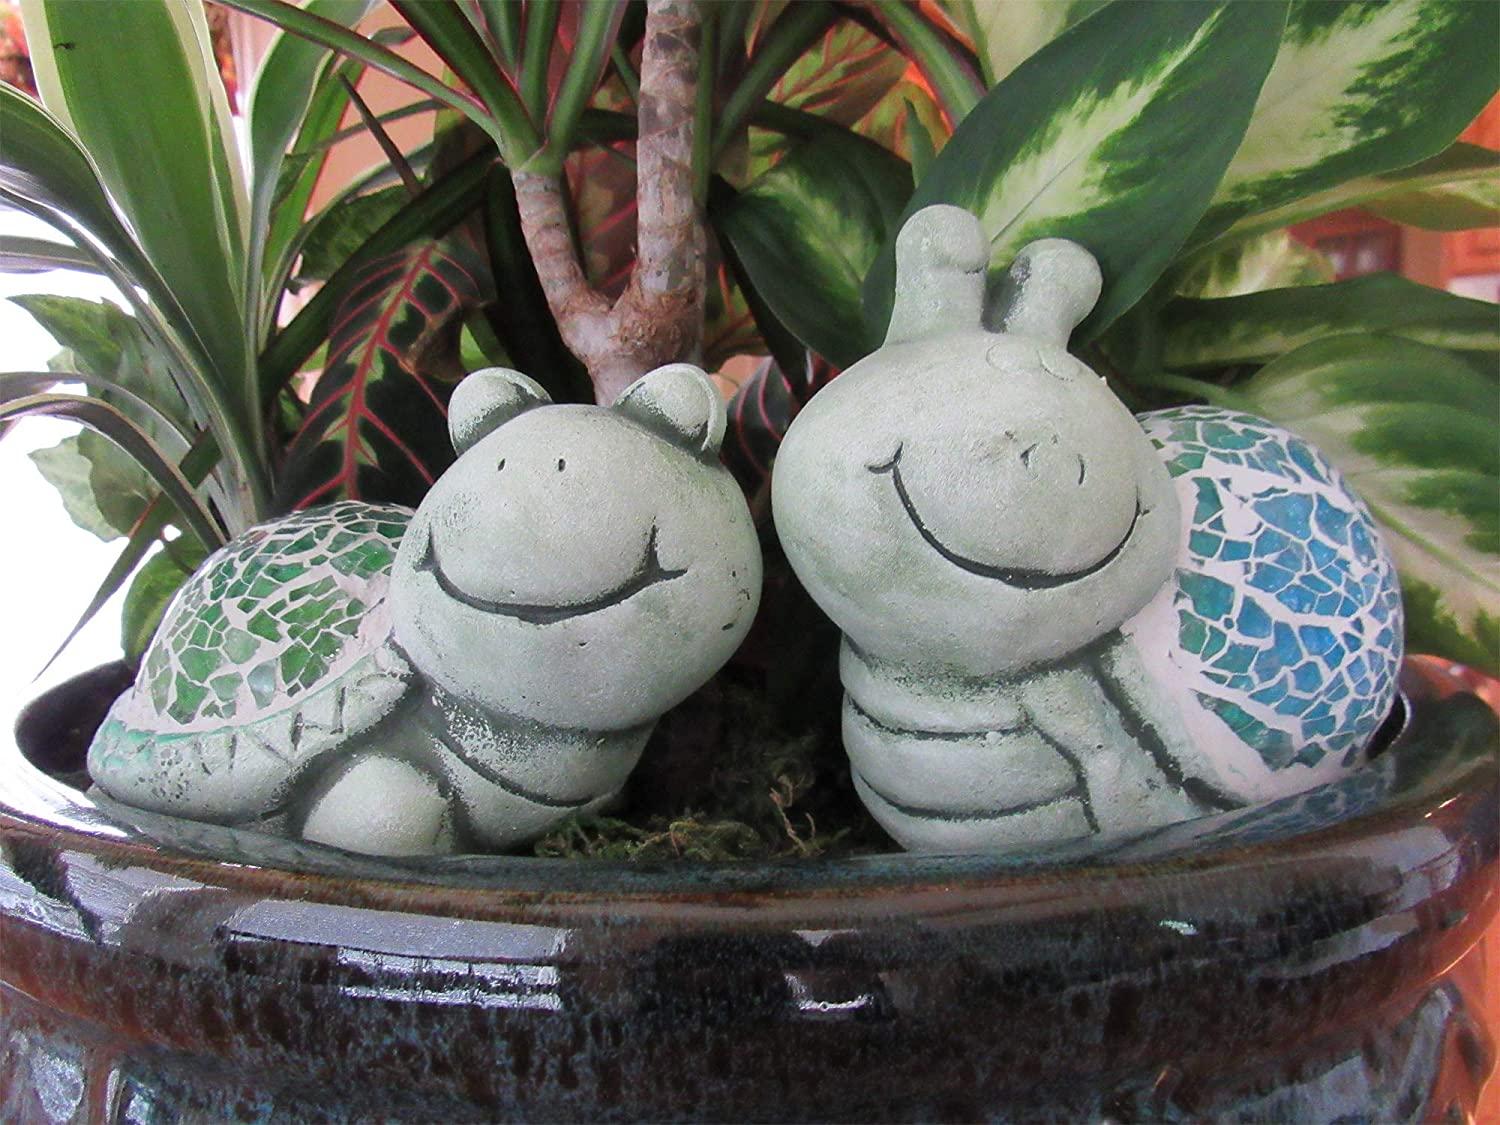 Turtle Garden Ornaments Statue, Flower Bed Decor, Outdoor Statues Decor for Home Snail Figurines Resin Sculptures for Pond, Lawn, Yard, Garden Sculpture Front Porch Decorations Outdoor (Set of 2)